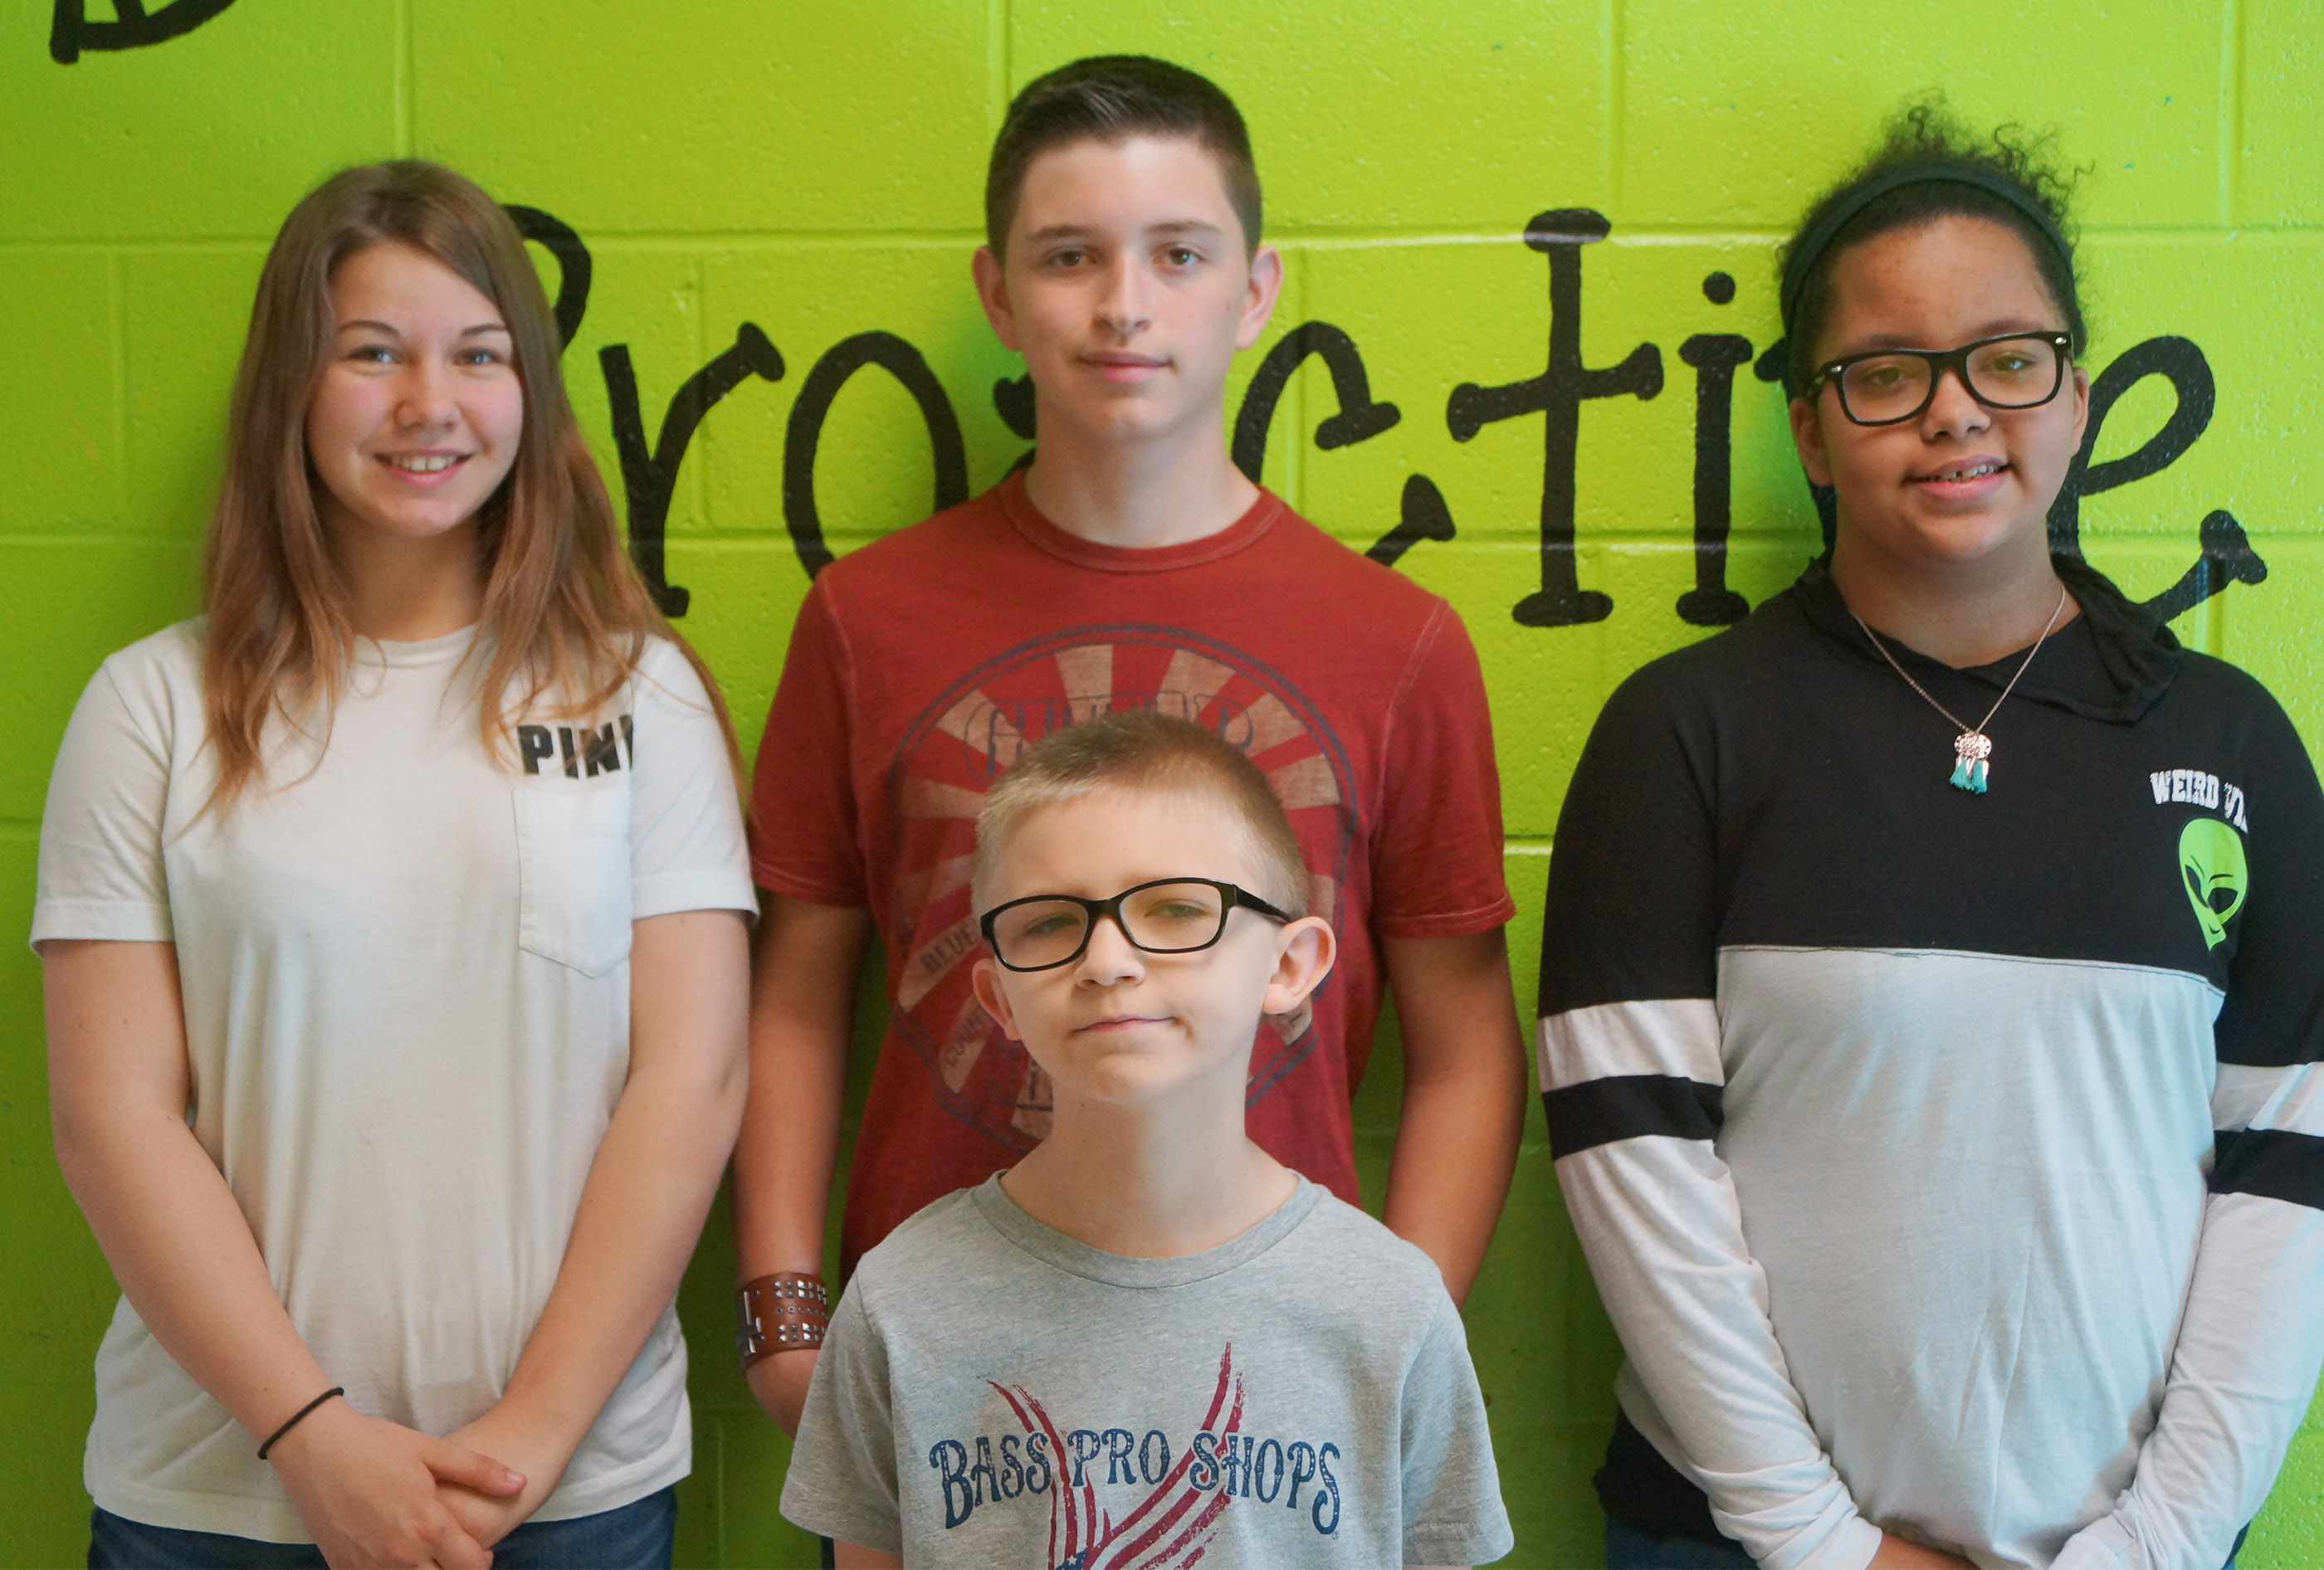 In front is fourth-grader Tyler Haulk. From left, back, are eighth-grader MaKala Hammett, seventh-grader Caden Cowherd and fifth-grader Kiara Graves. Absent from the photo is sixth-grader Tyler Booth.